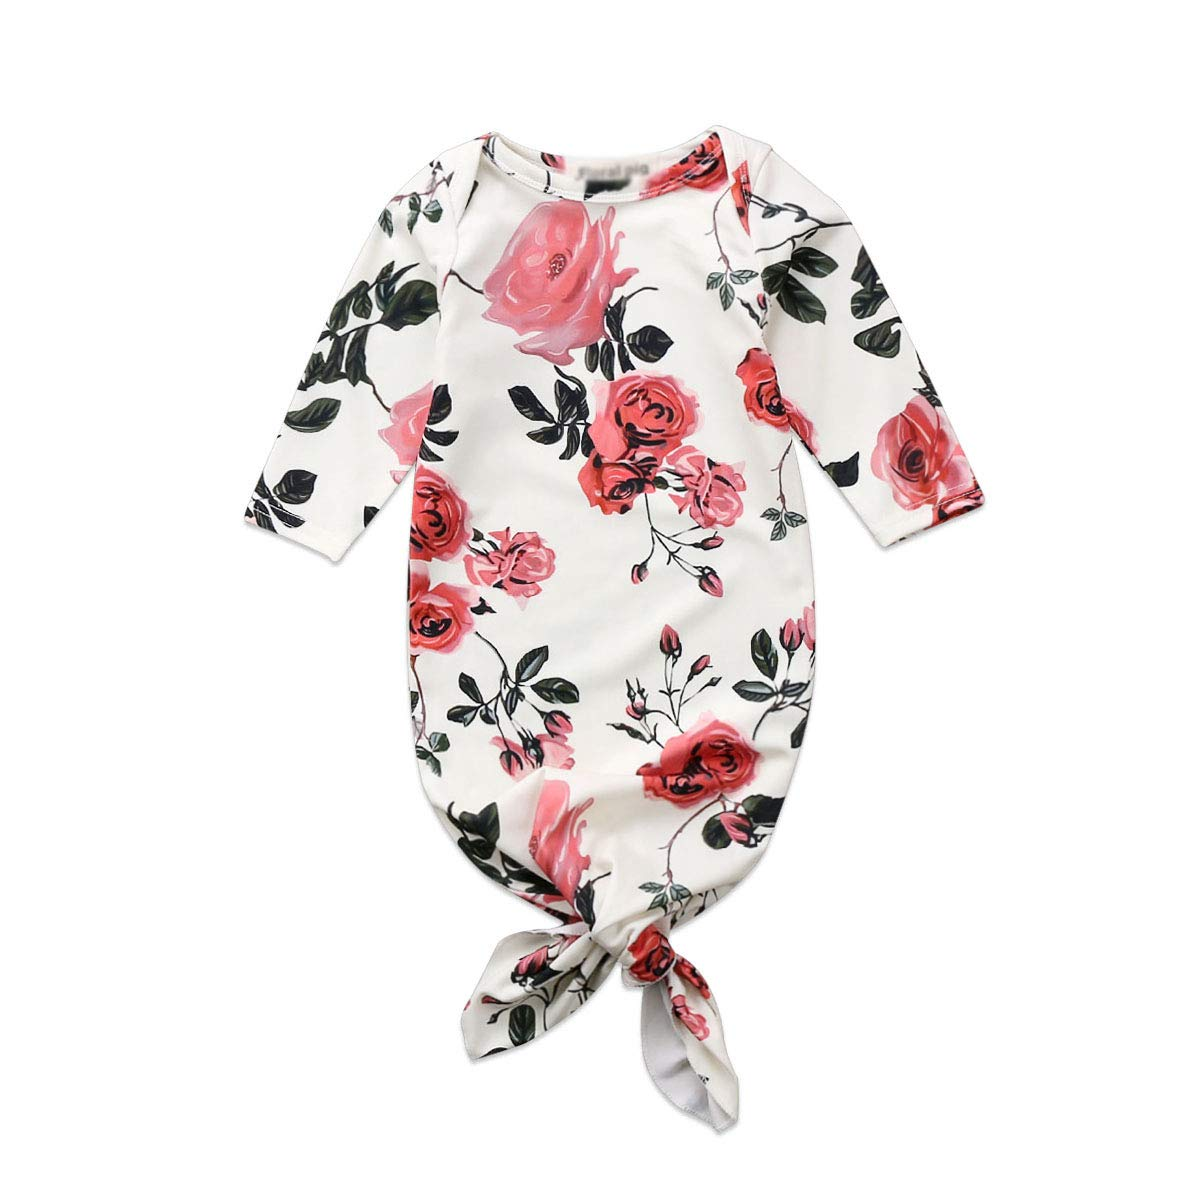 Newborn Baby Long Sleeve Floral Knotted Infant Sleepwear for Baby Girl and Boy